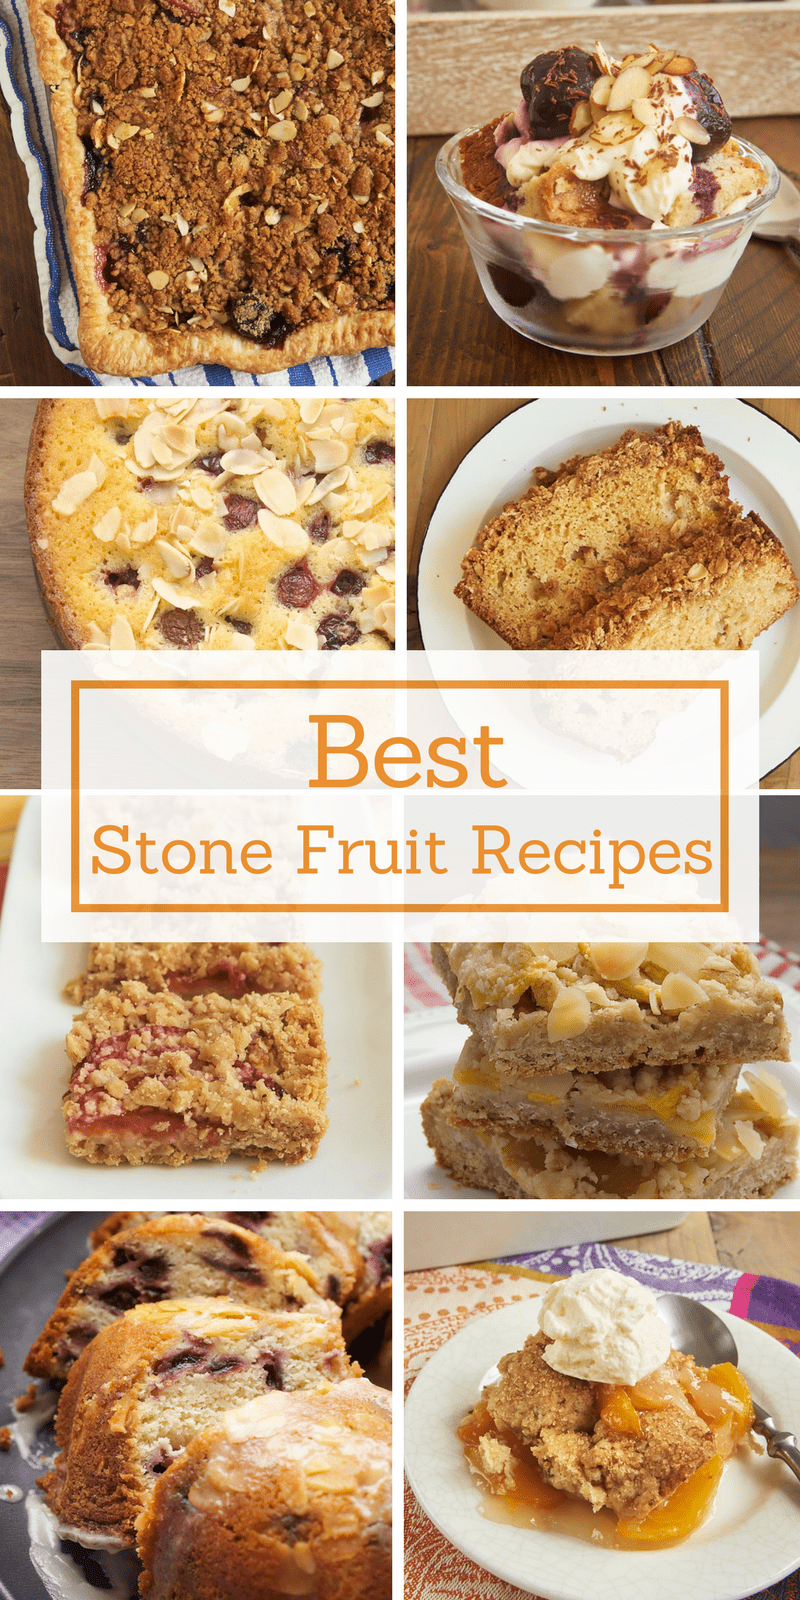 Bake up something sweet with summer peaches, plums, and cherries with these favorite stone fruit recipes from Bake or Break.